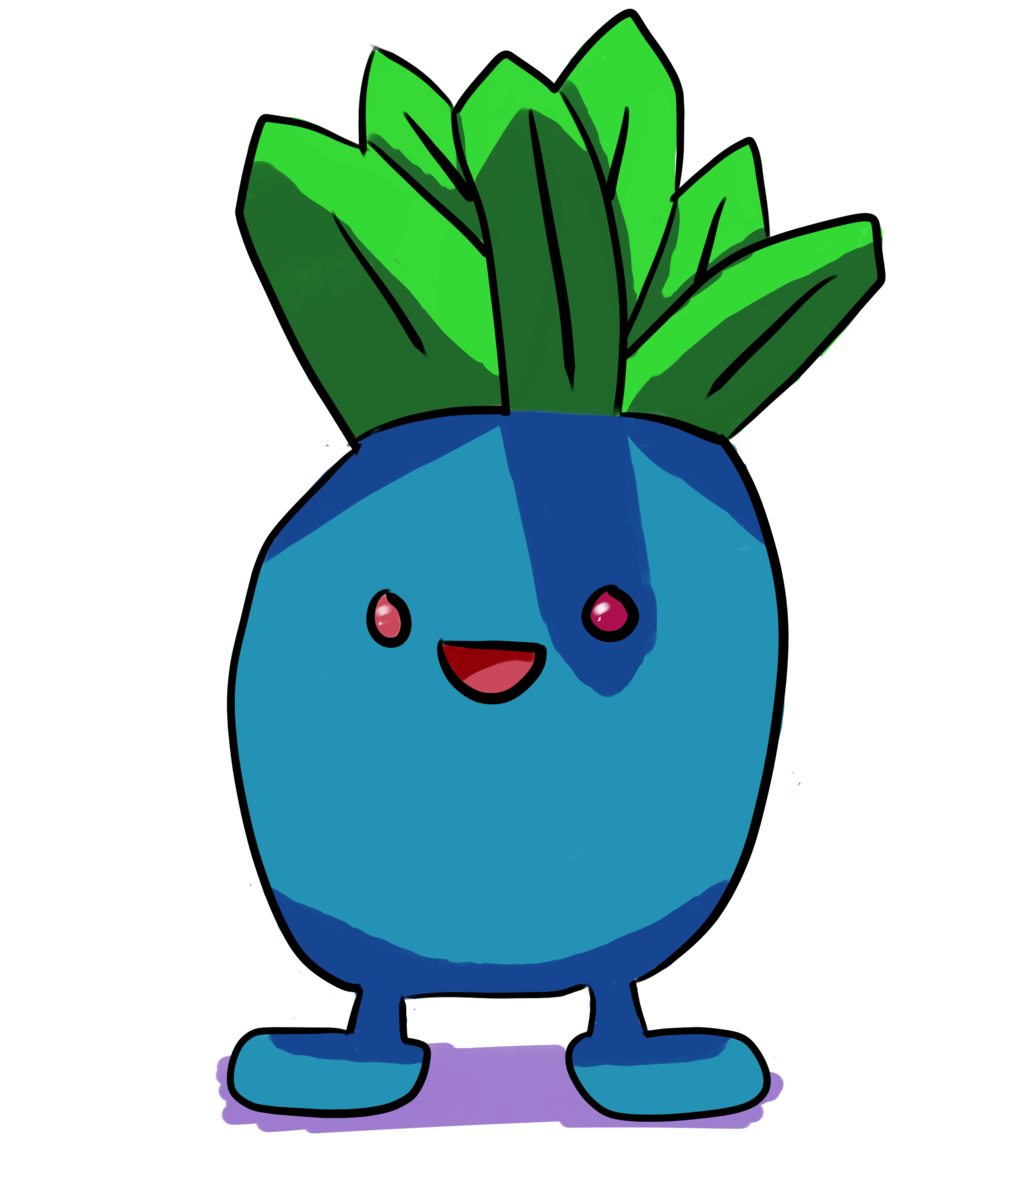 Most recent image: its an oddish